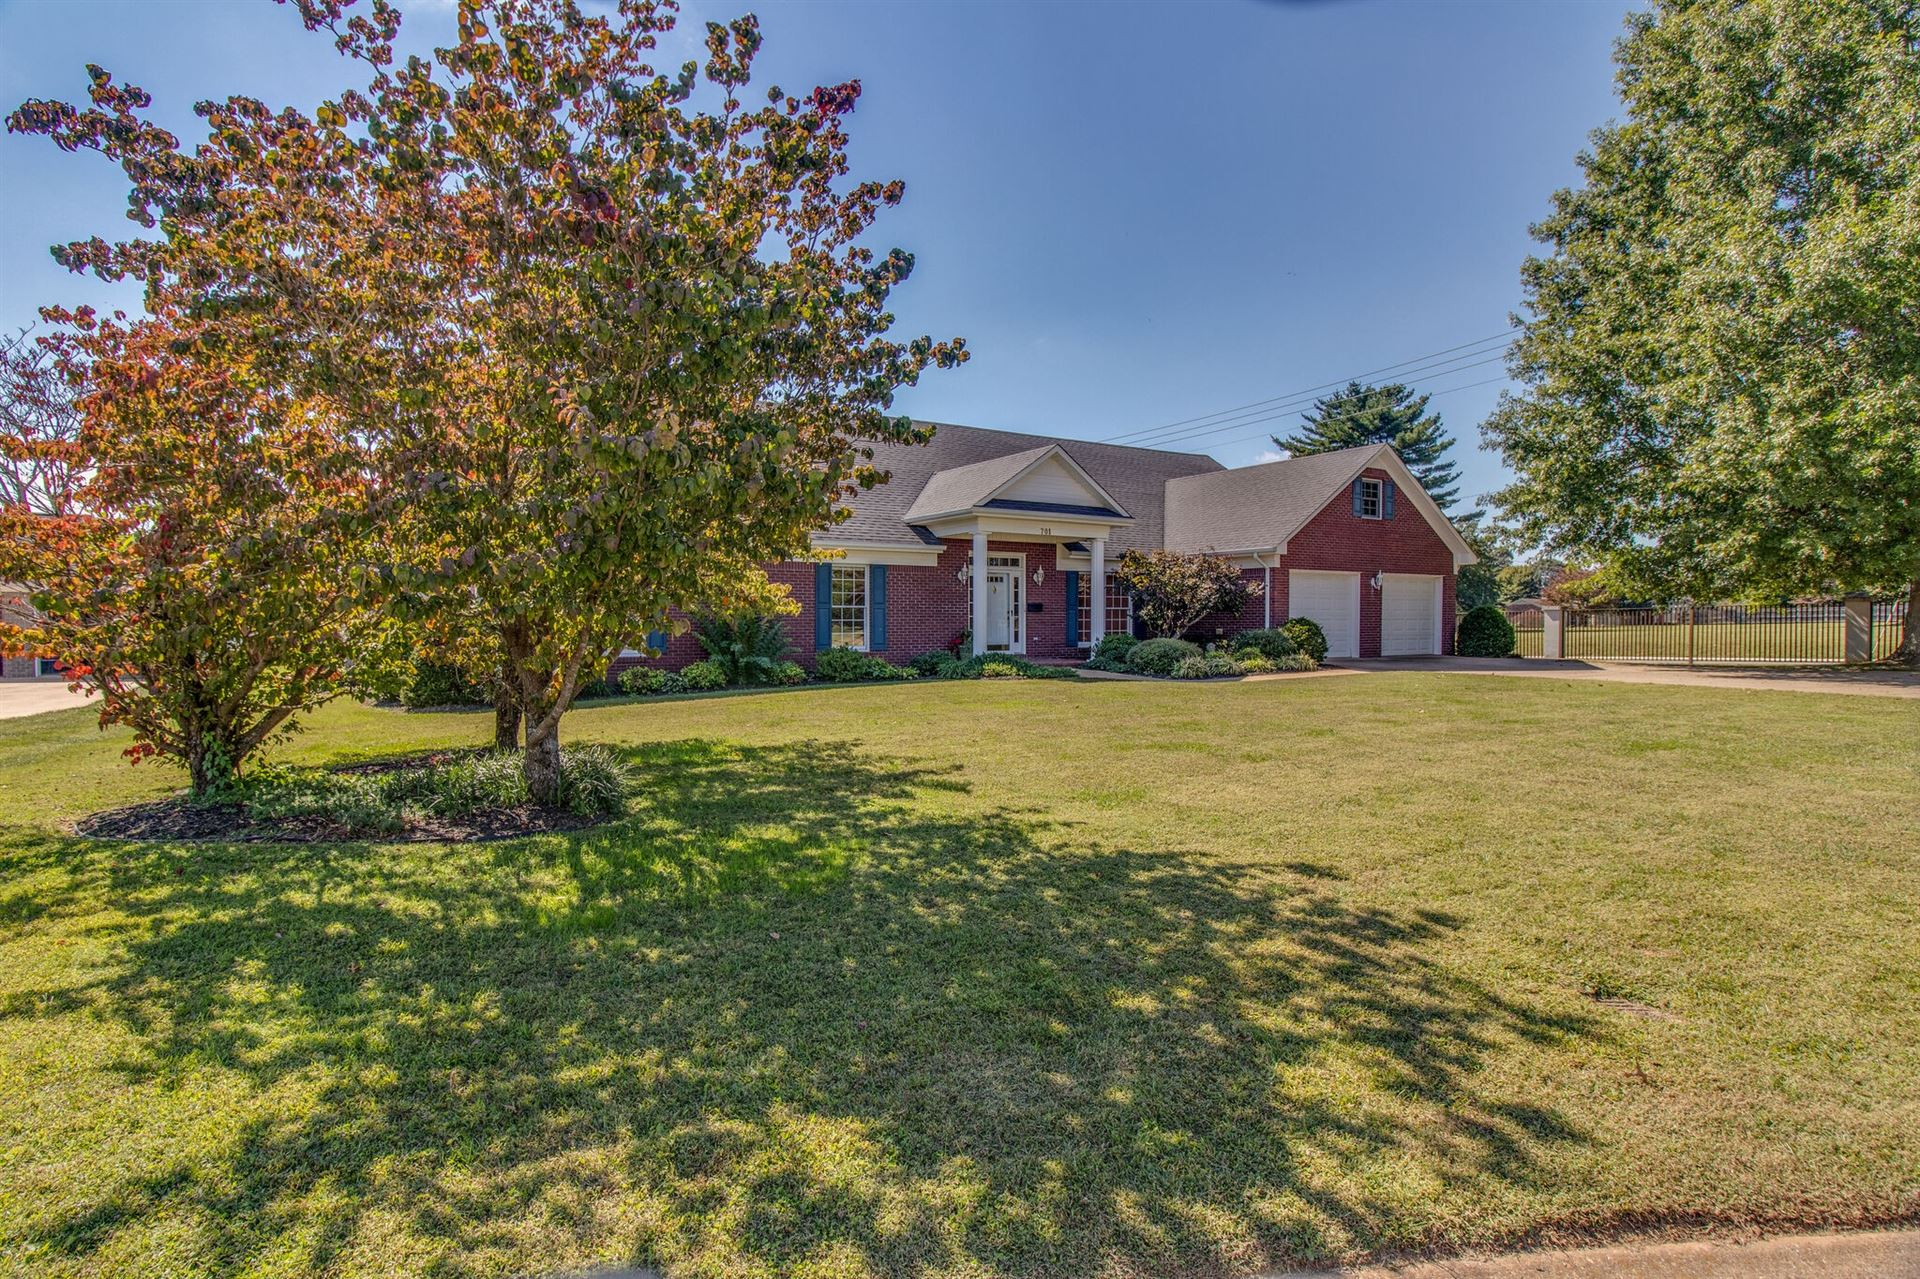 701 Parkes Cir, Lawrenceburg, TN 38464 - MLS#: 2182882